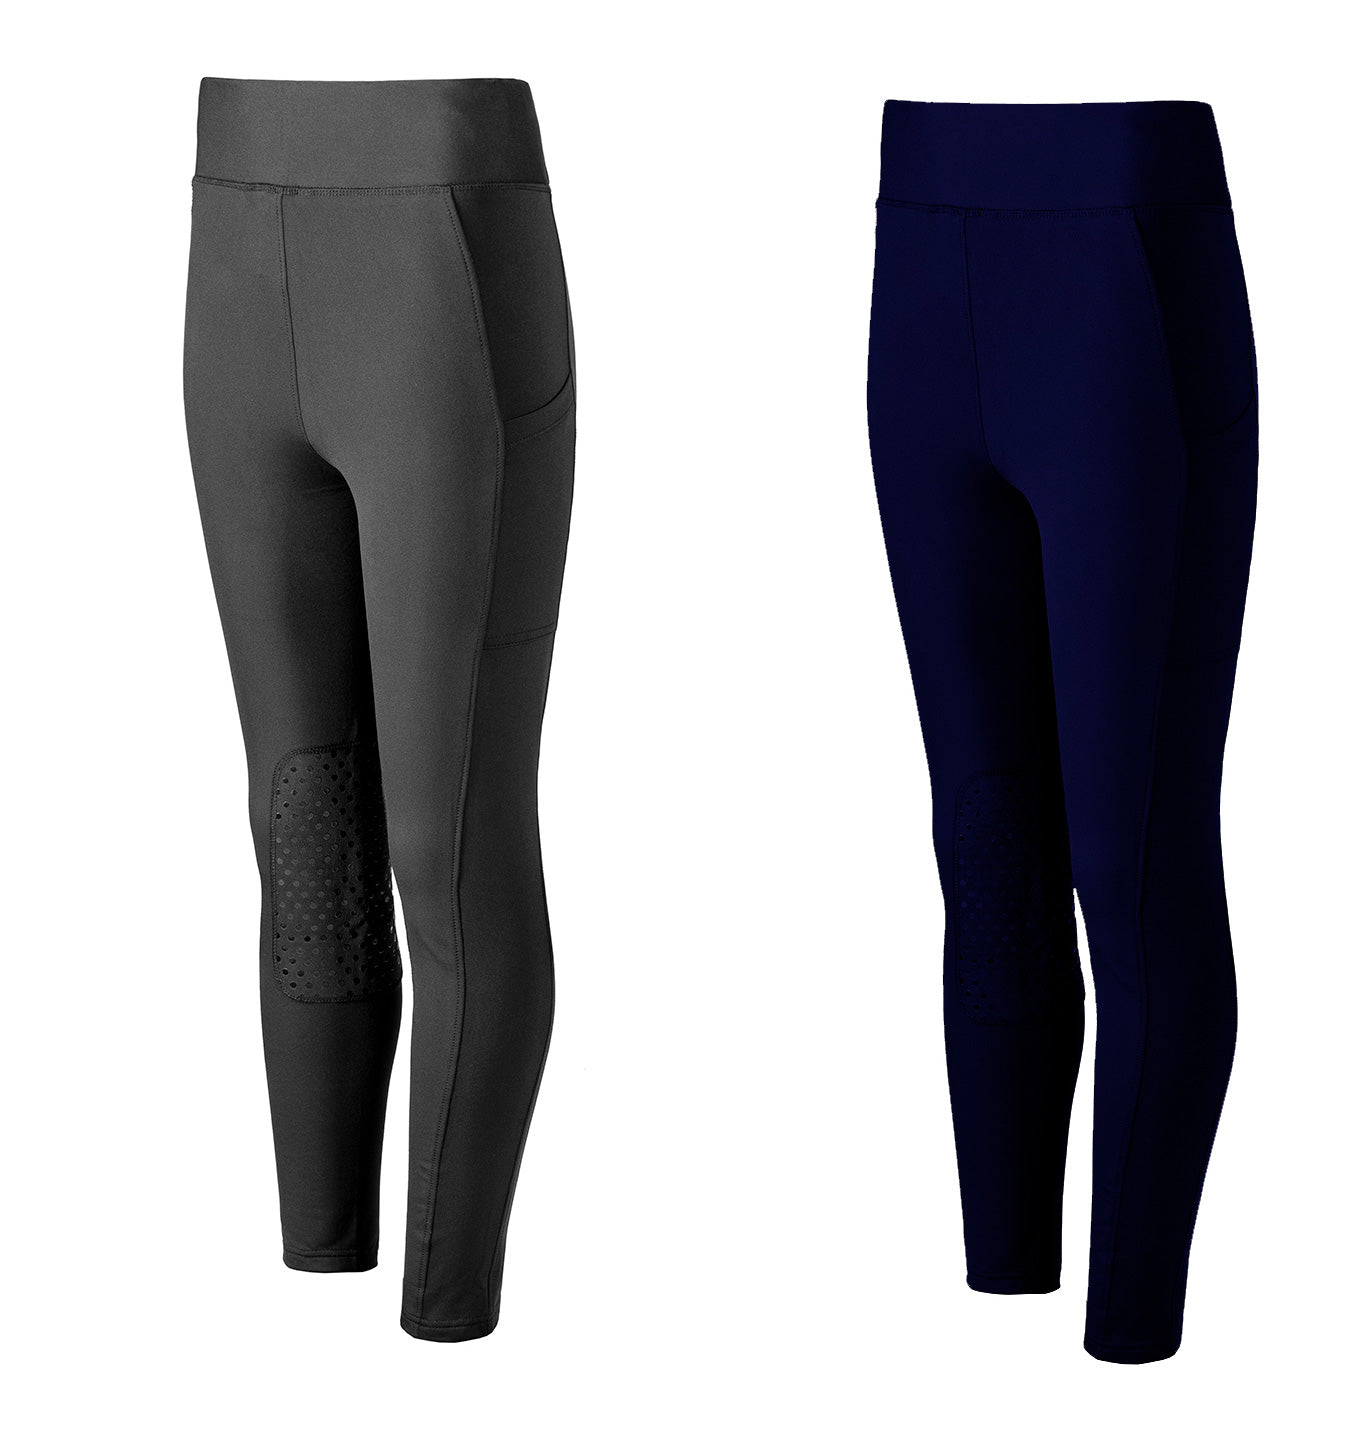 Sporting Hares Victorious Thermal Riding Leggings | Black and navy